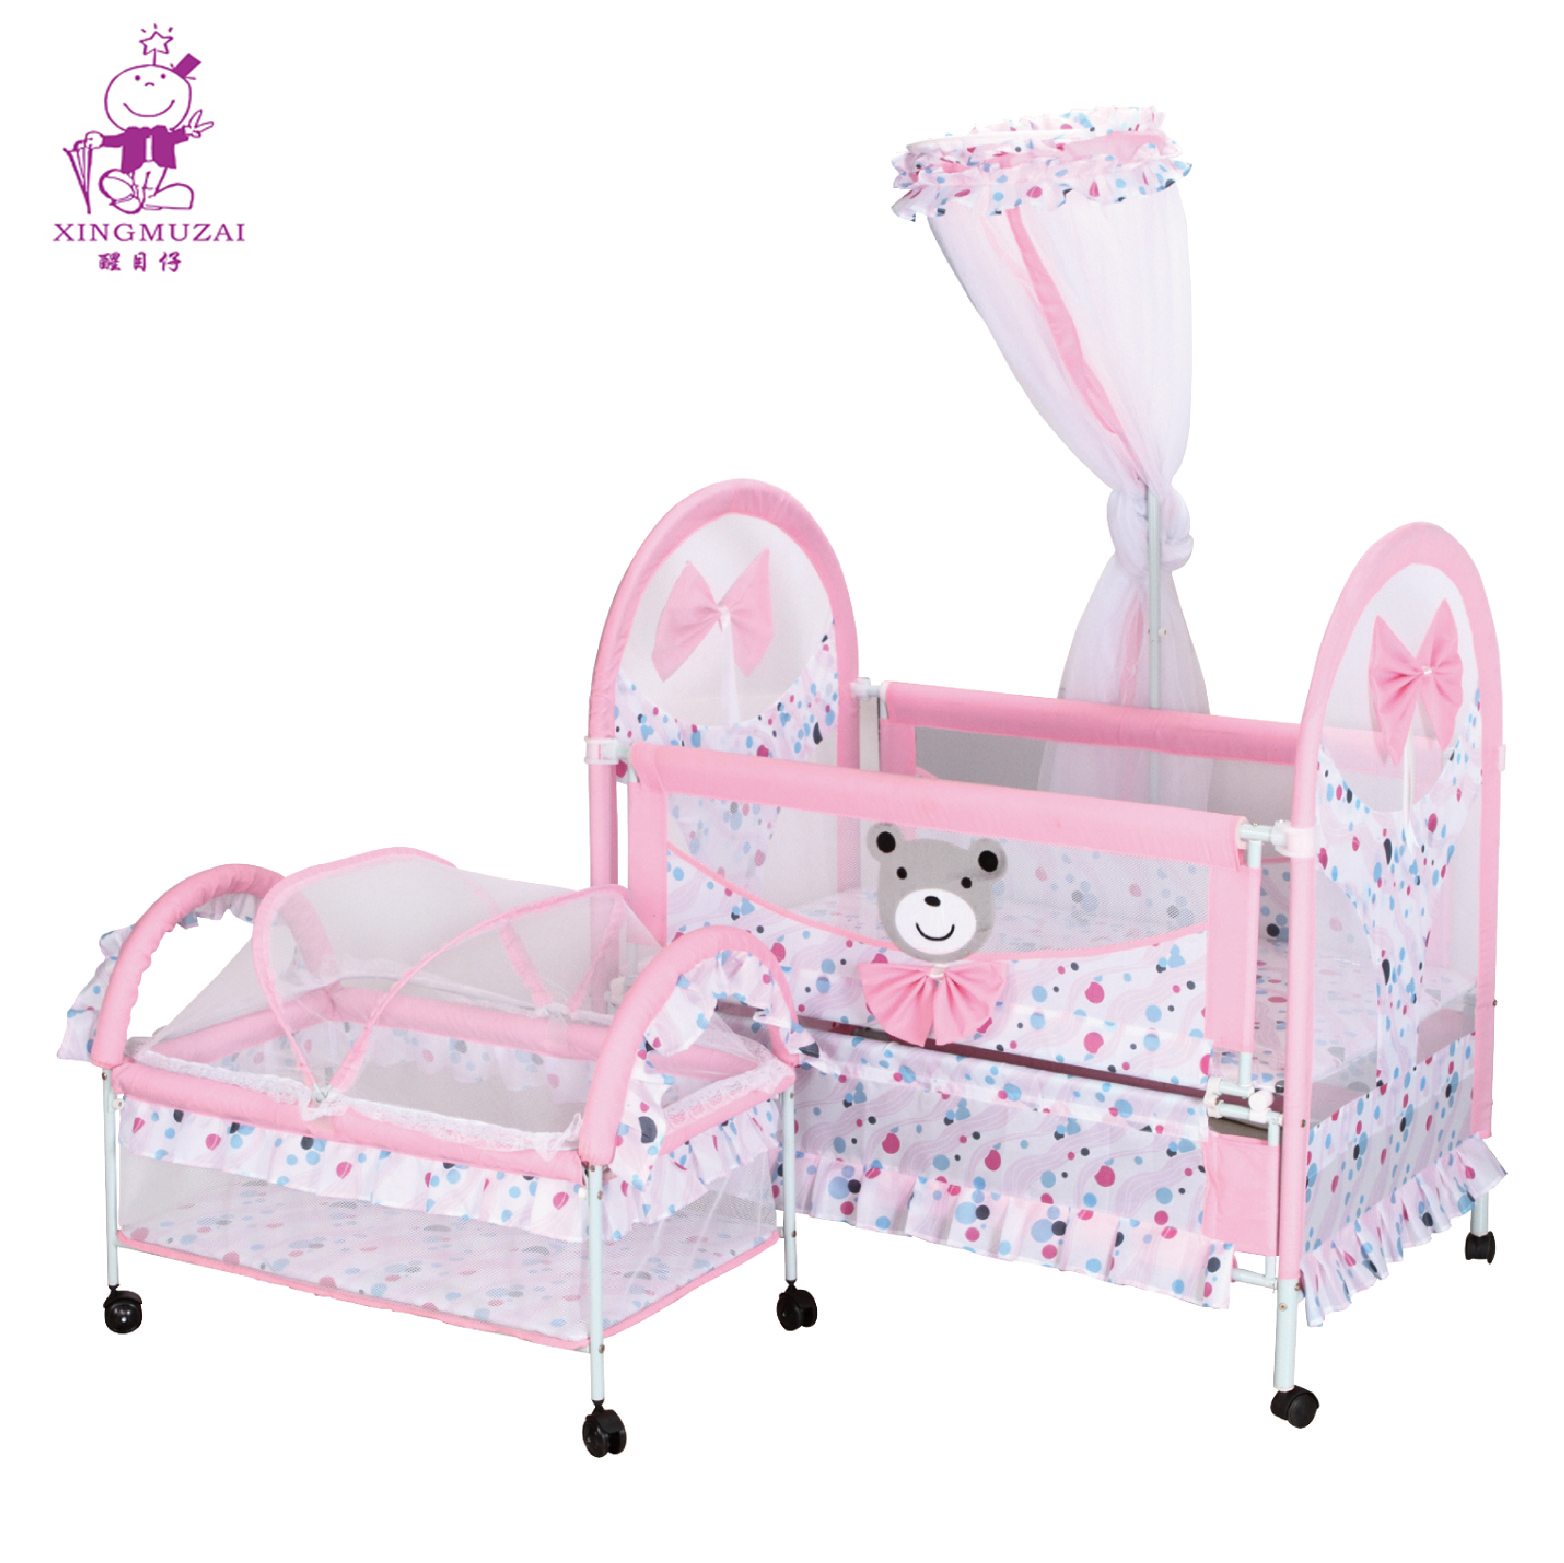 Picture of: Portable Iron Metal Baby Cot Firm Children Bed With Mosquito Net Buy Baby Metal Crib Metal Firm Children Bed Portable Iron Metal Baby Cot Firm Children Bed With Mosquito Net Product On Alibaba Com